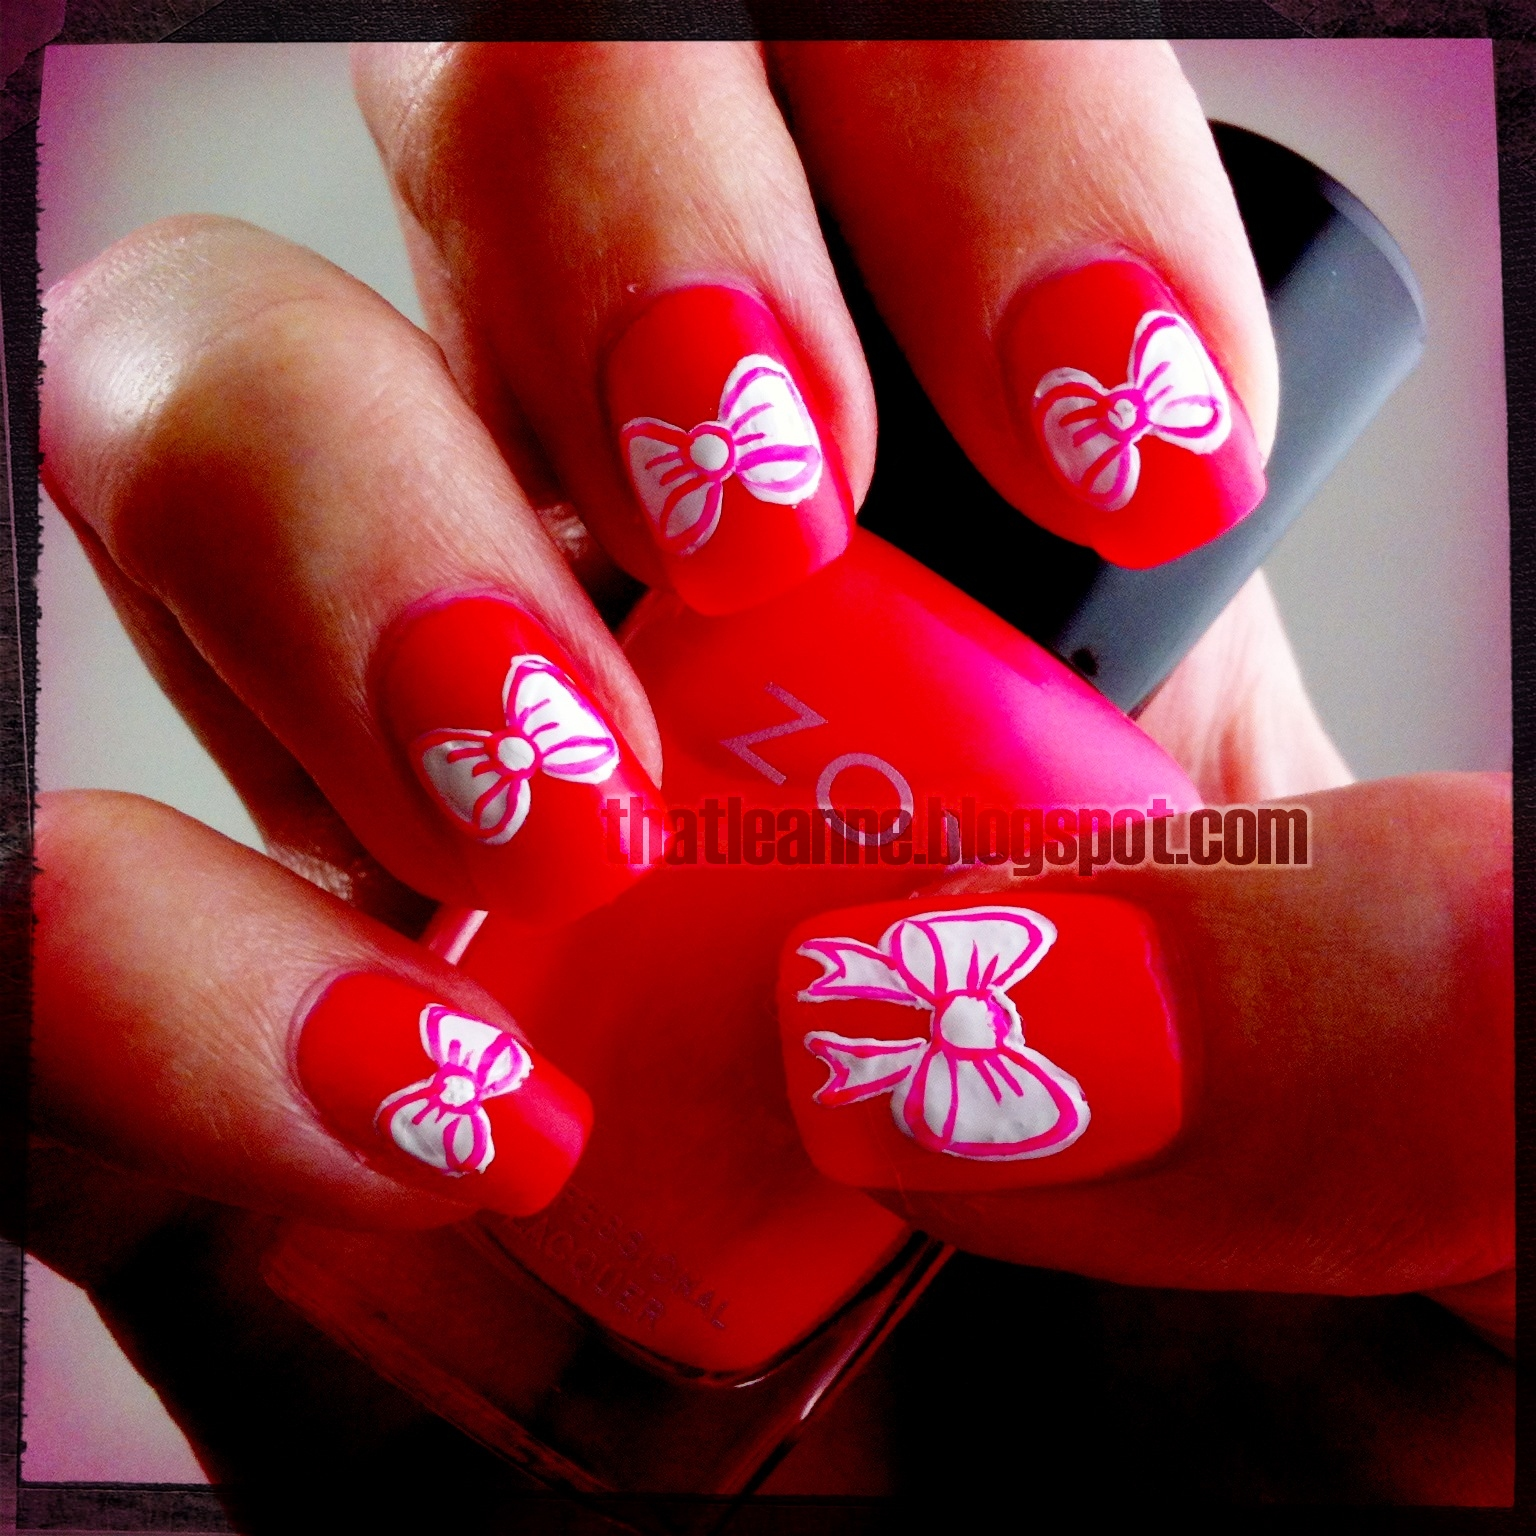 Thatleanne Chococat Nail Art: Thatleanne: Valentines Bow Nail Art How To